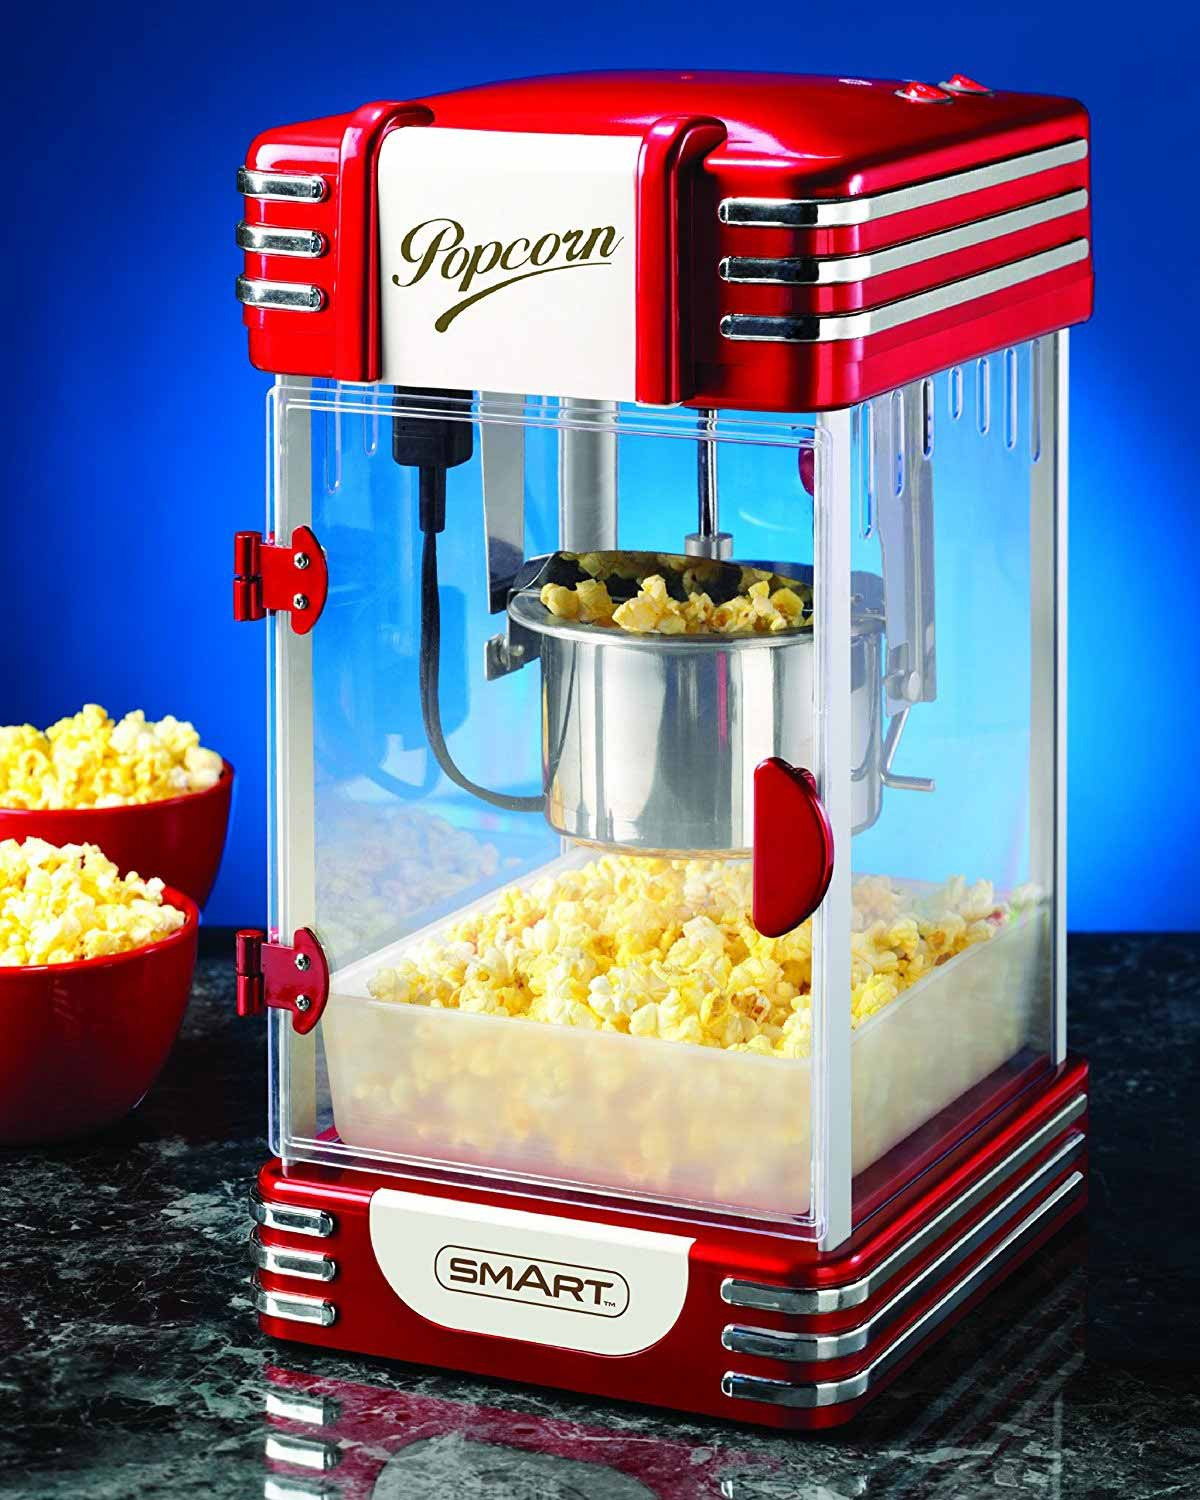 smart-popcorn-machine-rkp530-trf-rkp530smart-e89.jpg